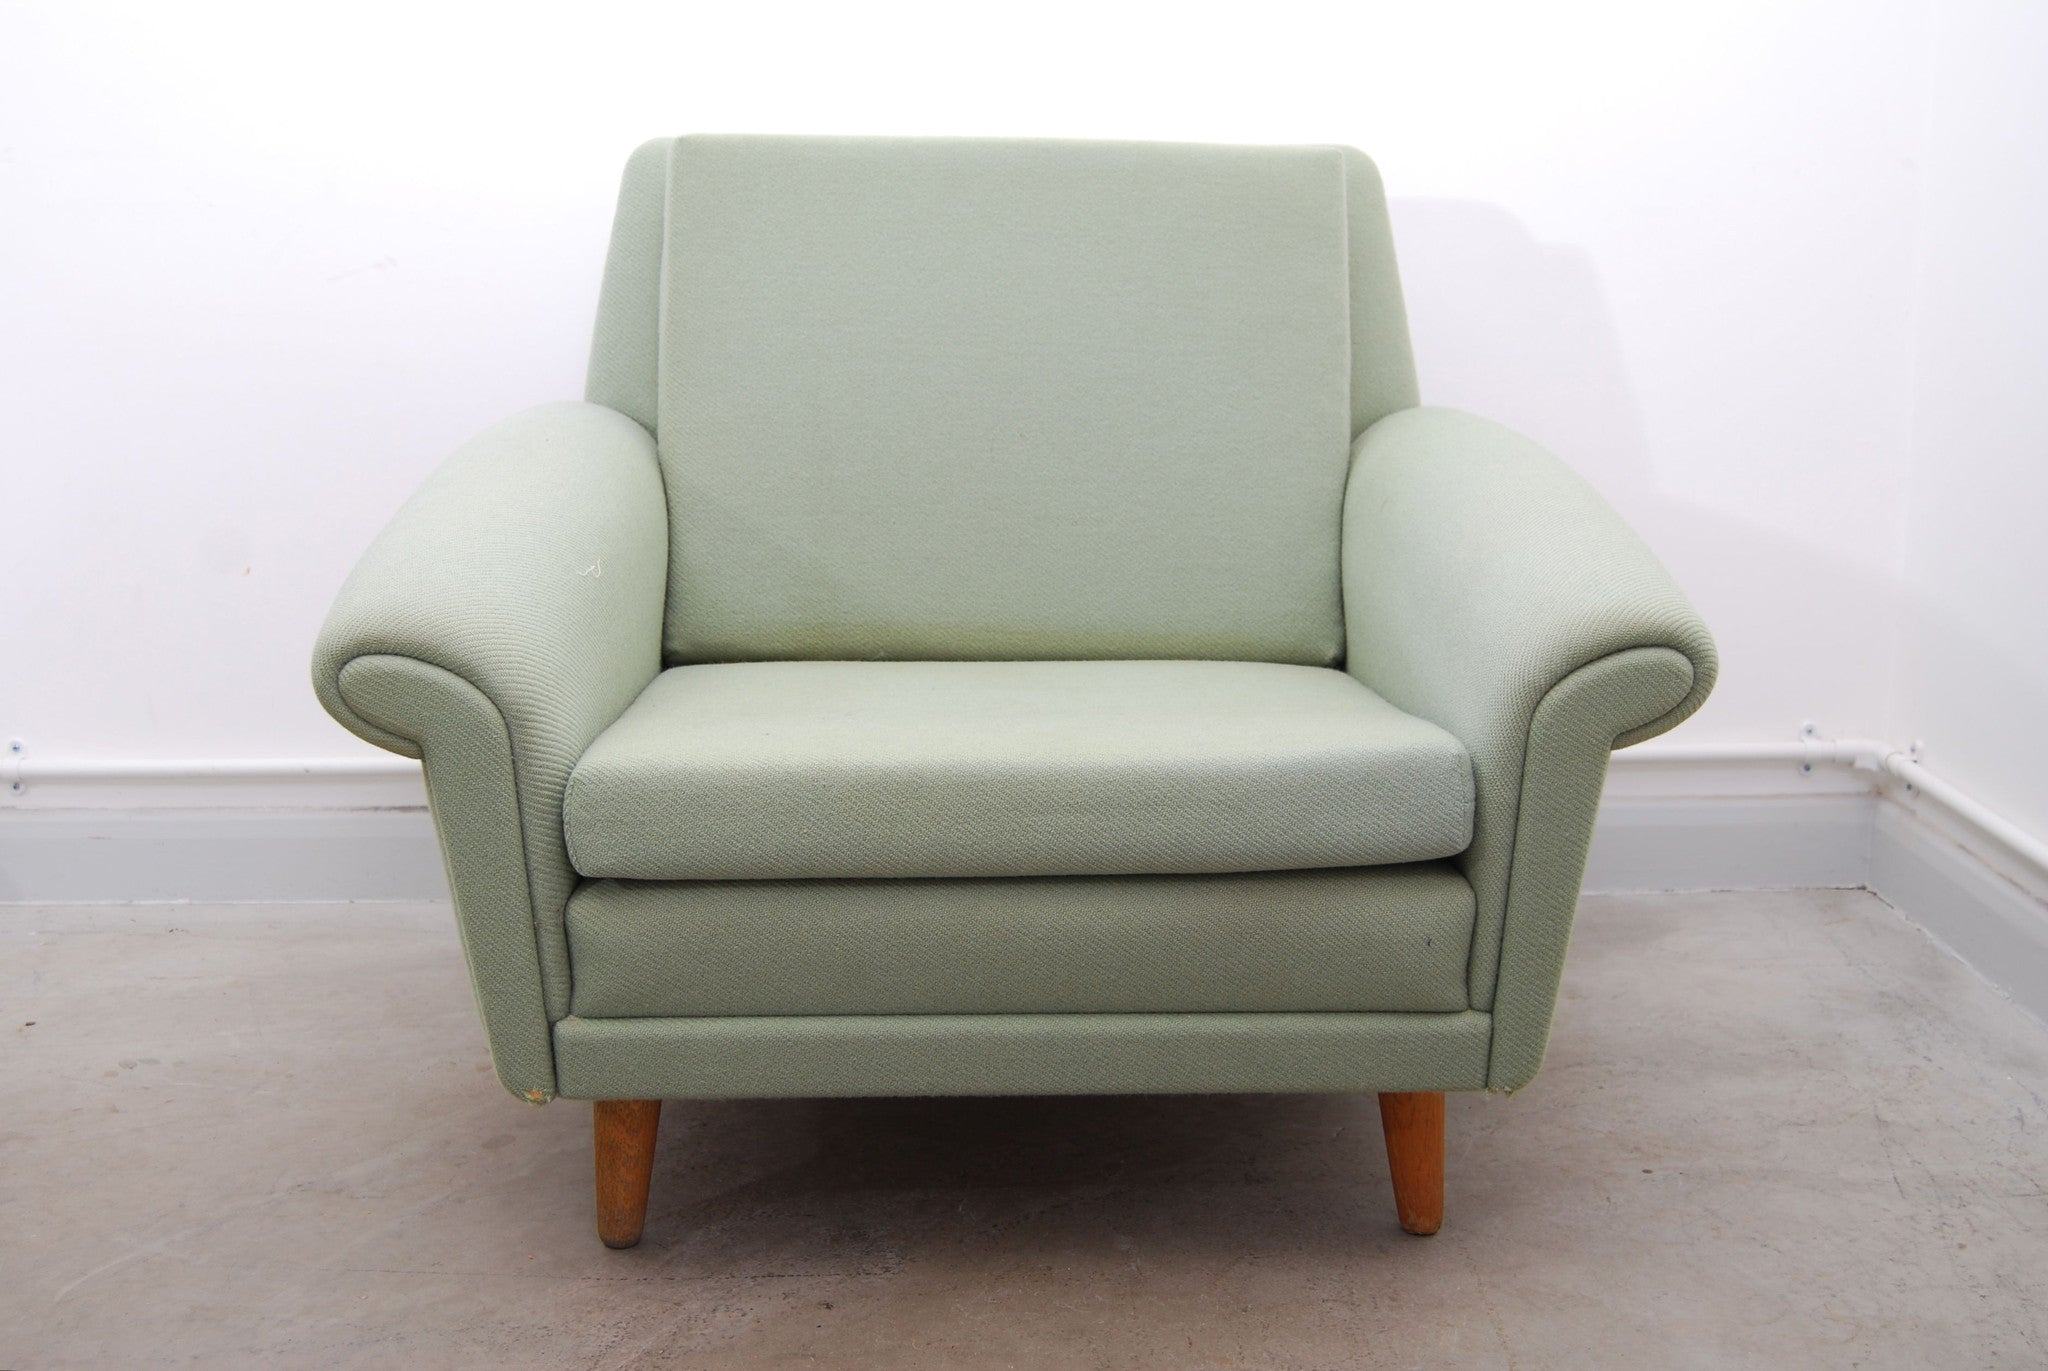 Mint green lounge chair